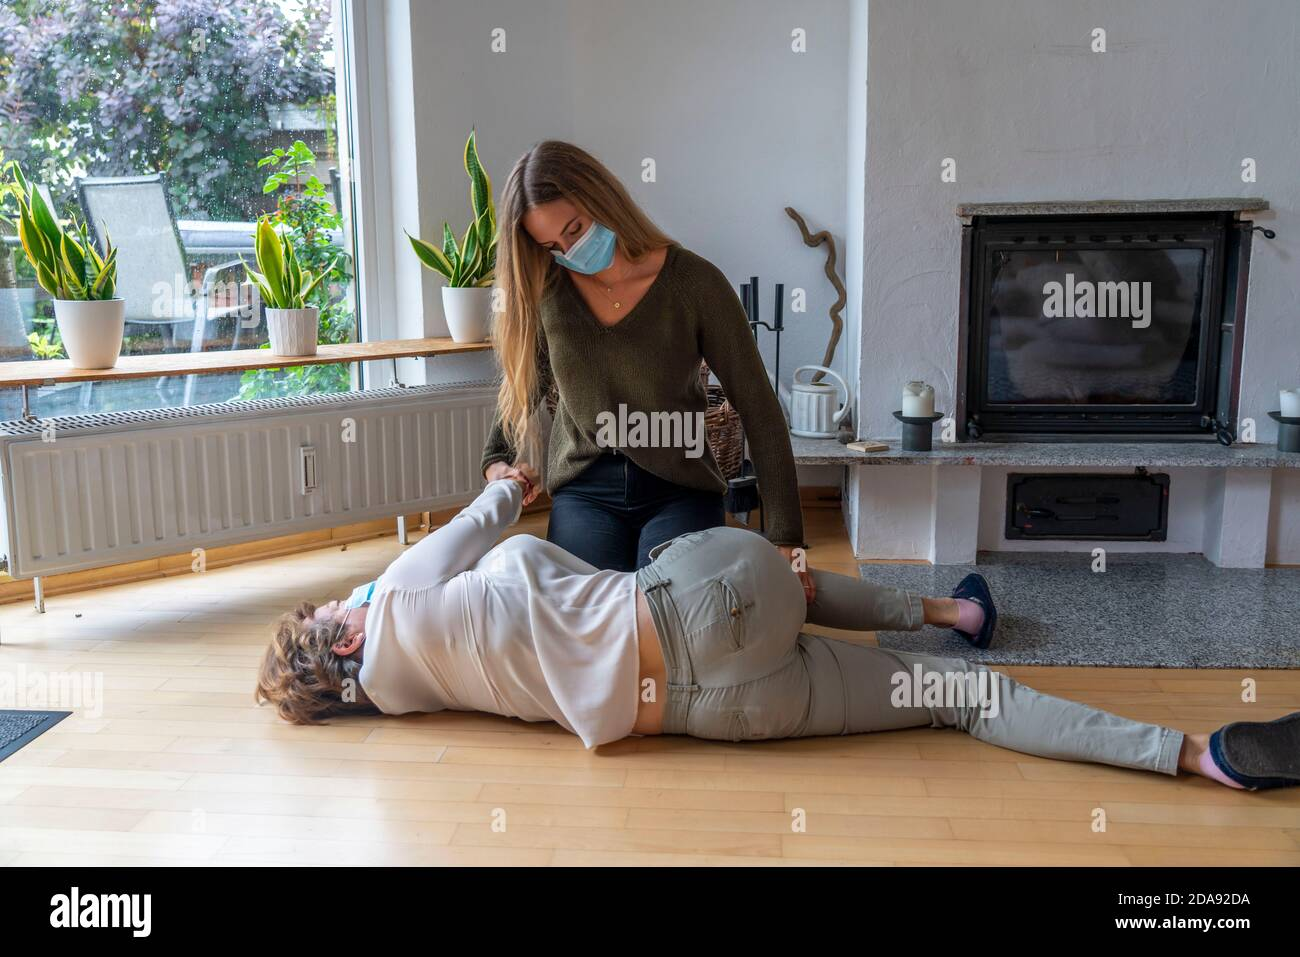 First aid measures under corona conditions, stable lateral position, after an accident in the home, with a mouth and nose mask, when first aid is give Stock Photo